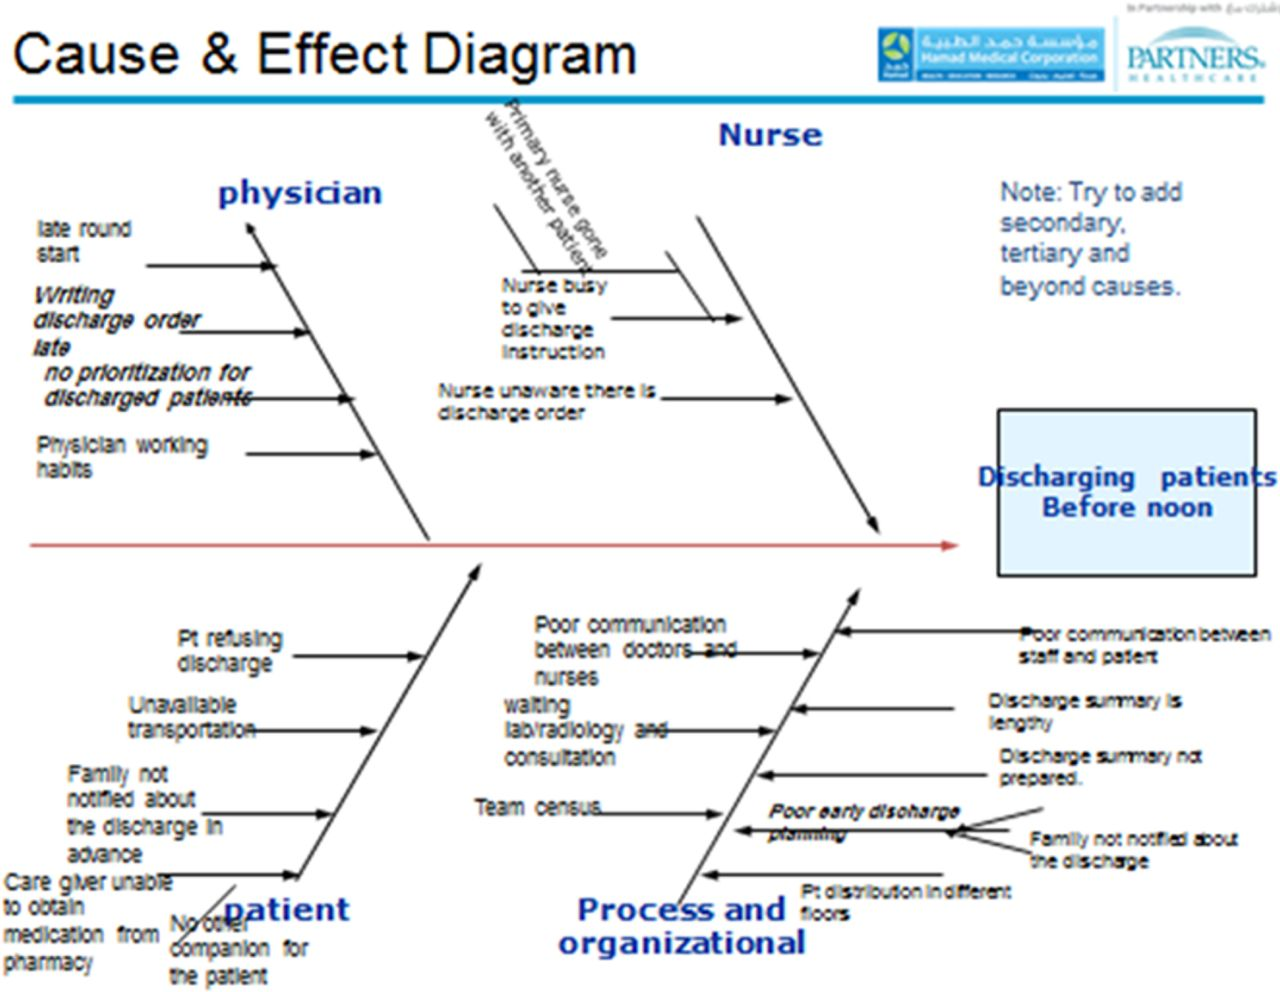 understanding and overcoming barriers to timely discharge from the pediatric units